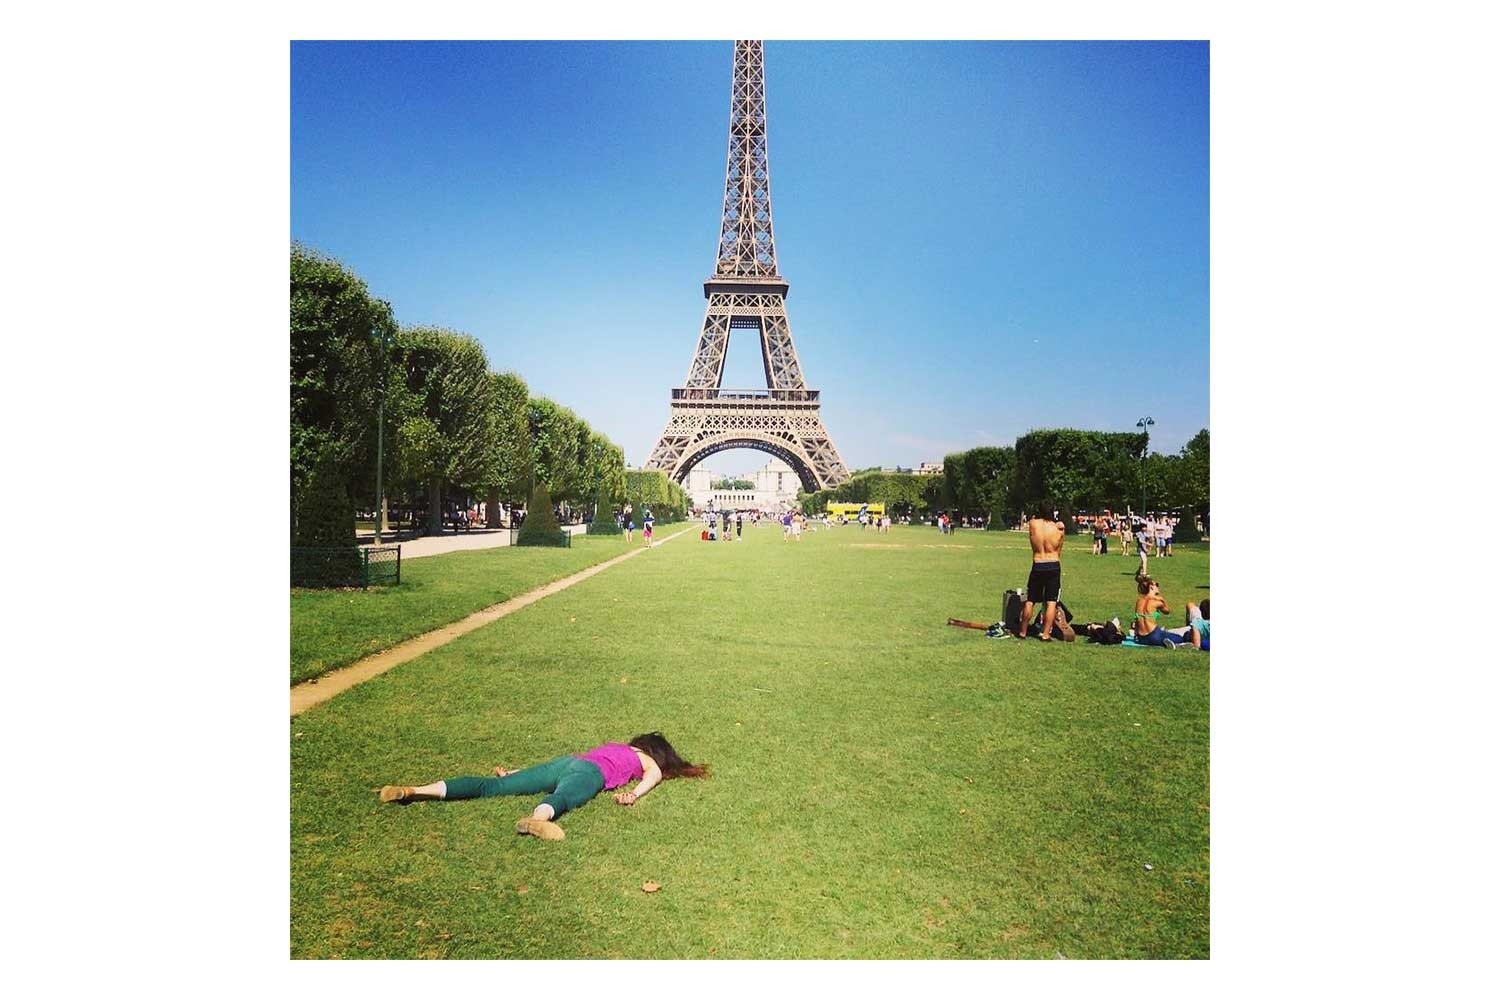 'Anti-selfies' Instagram artist puts new life into cliche travel photos 'done to death'